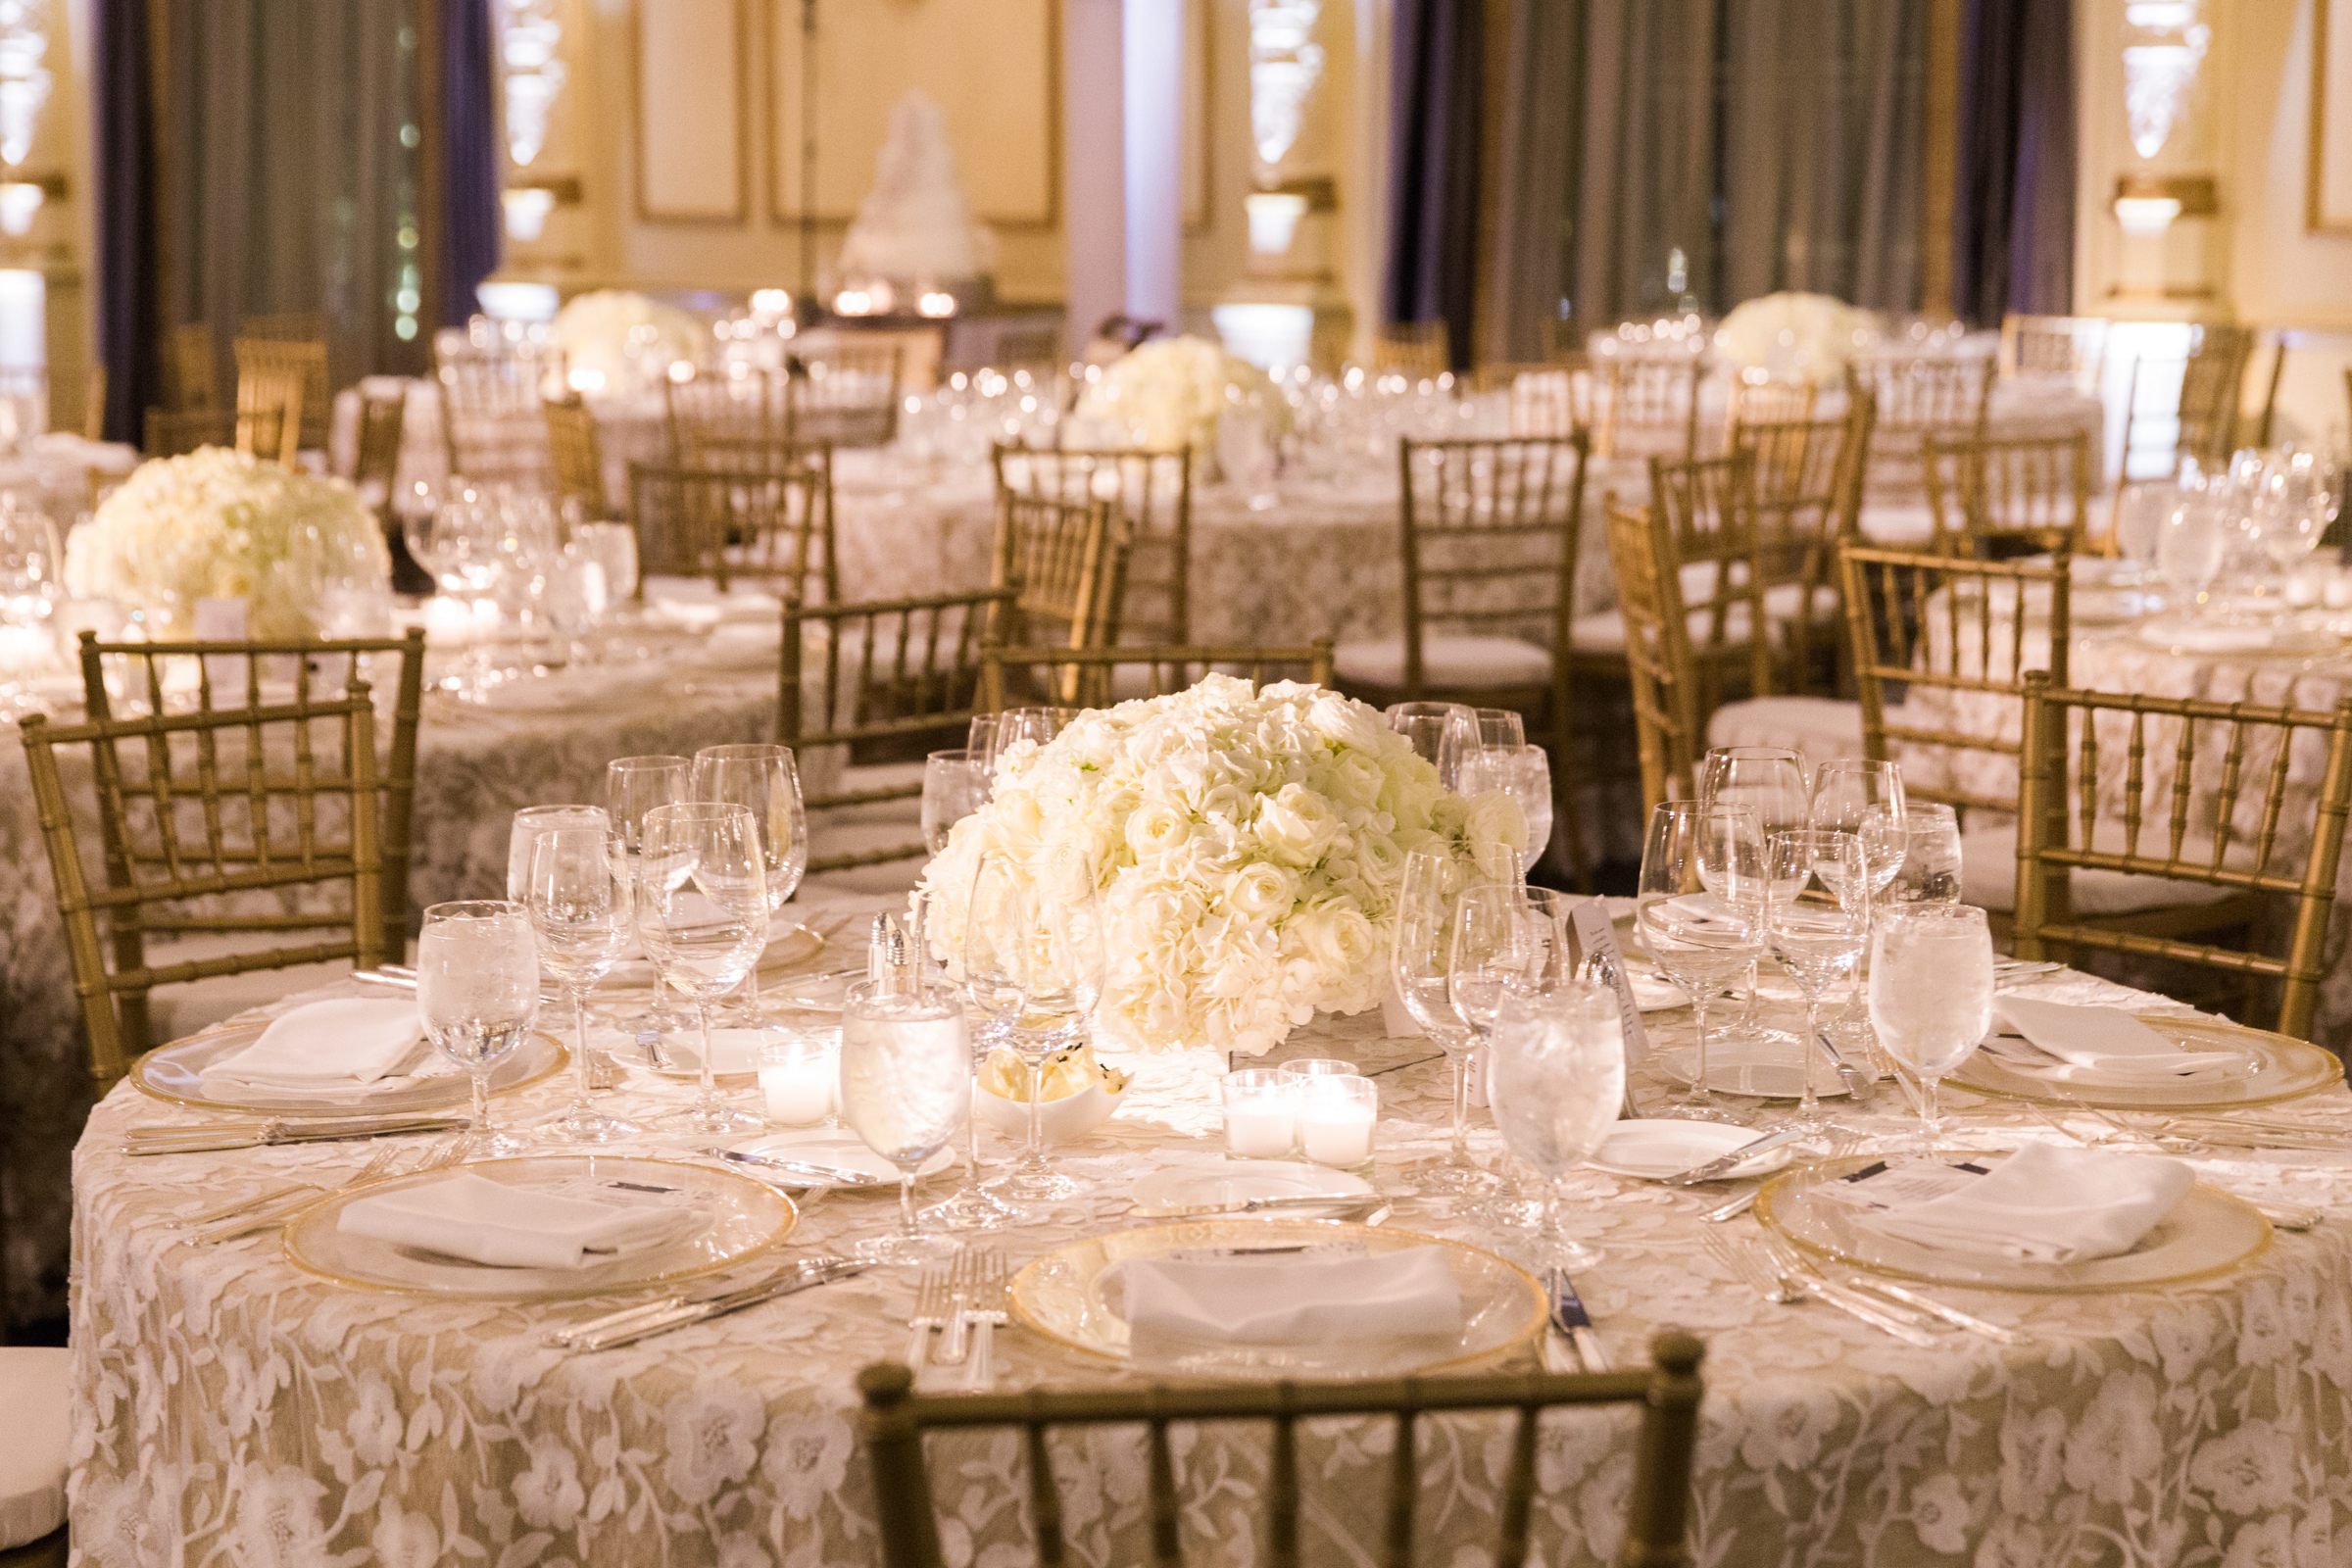 Lace table cloths with gold chivari chairs - photo by Stephanie Cristalli Photography